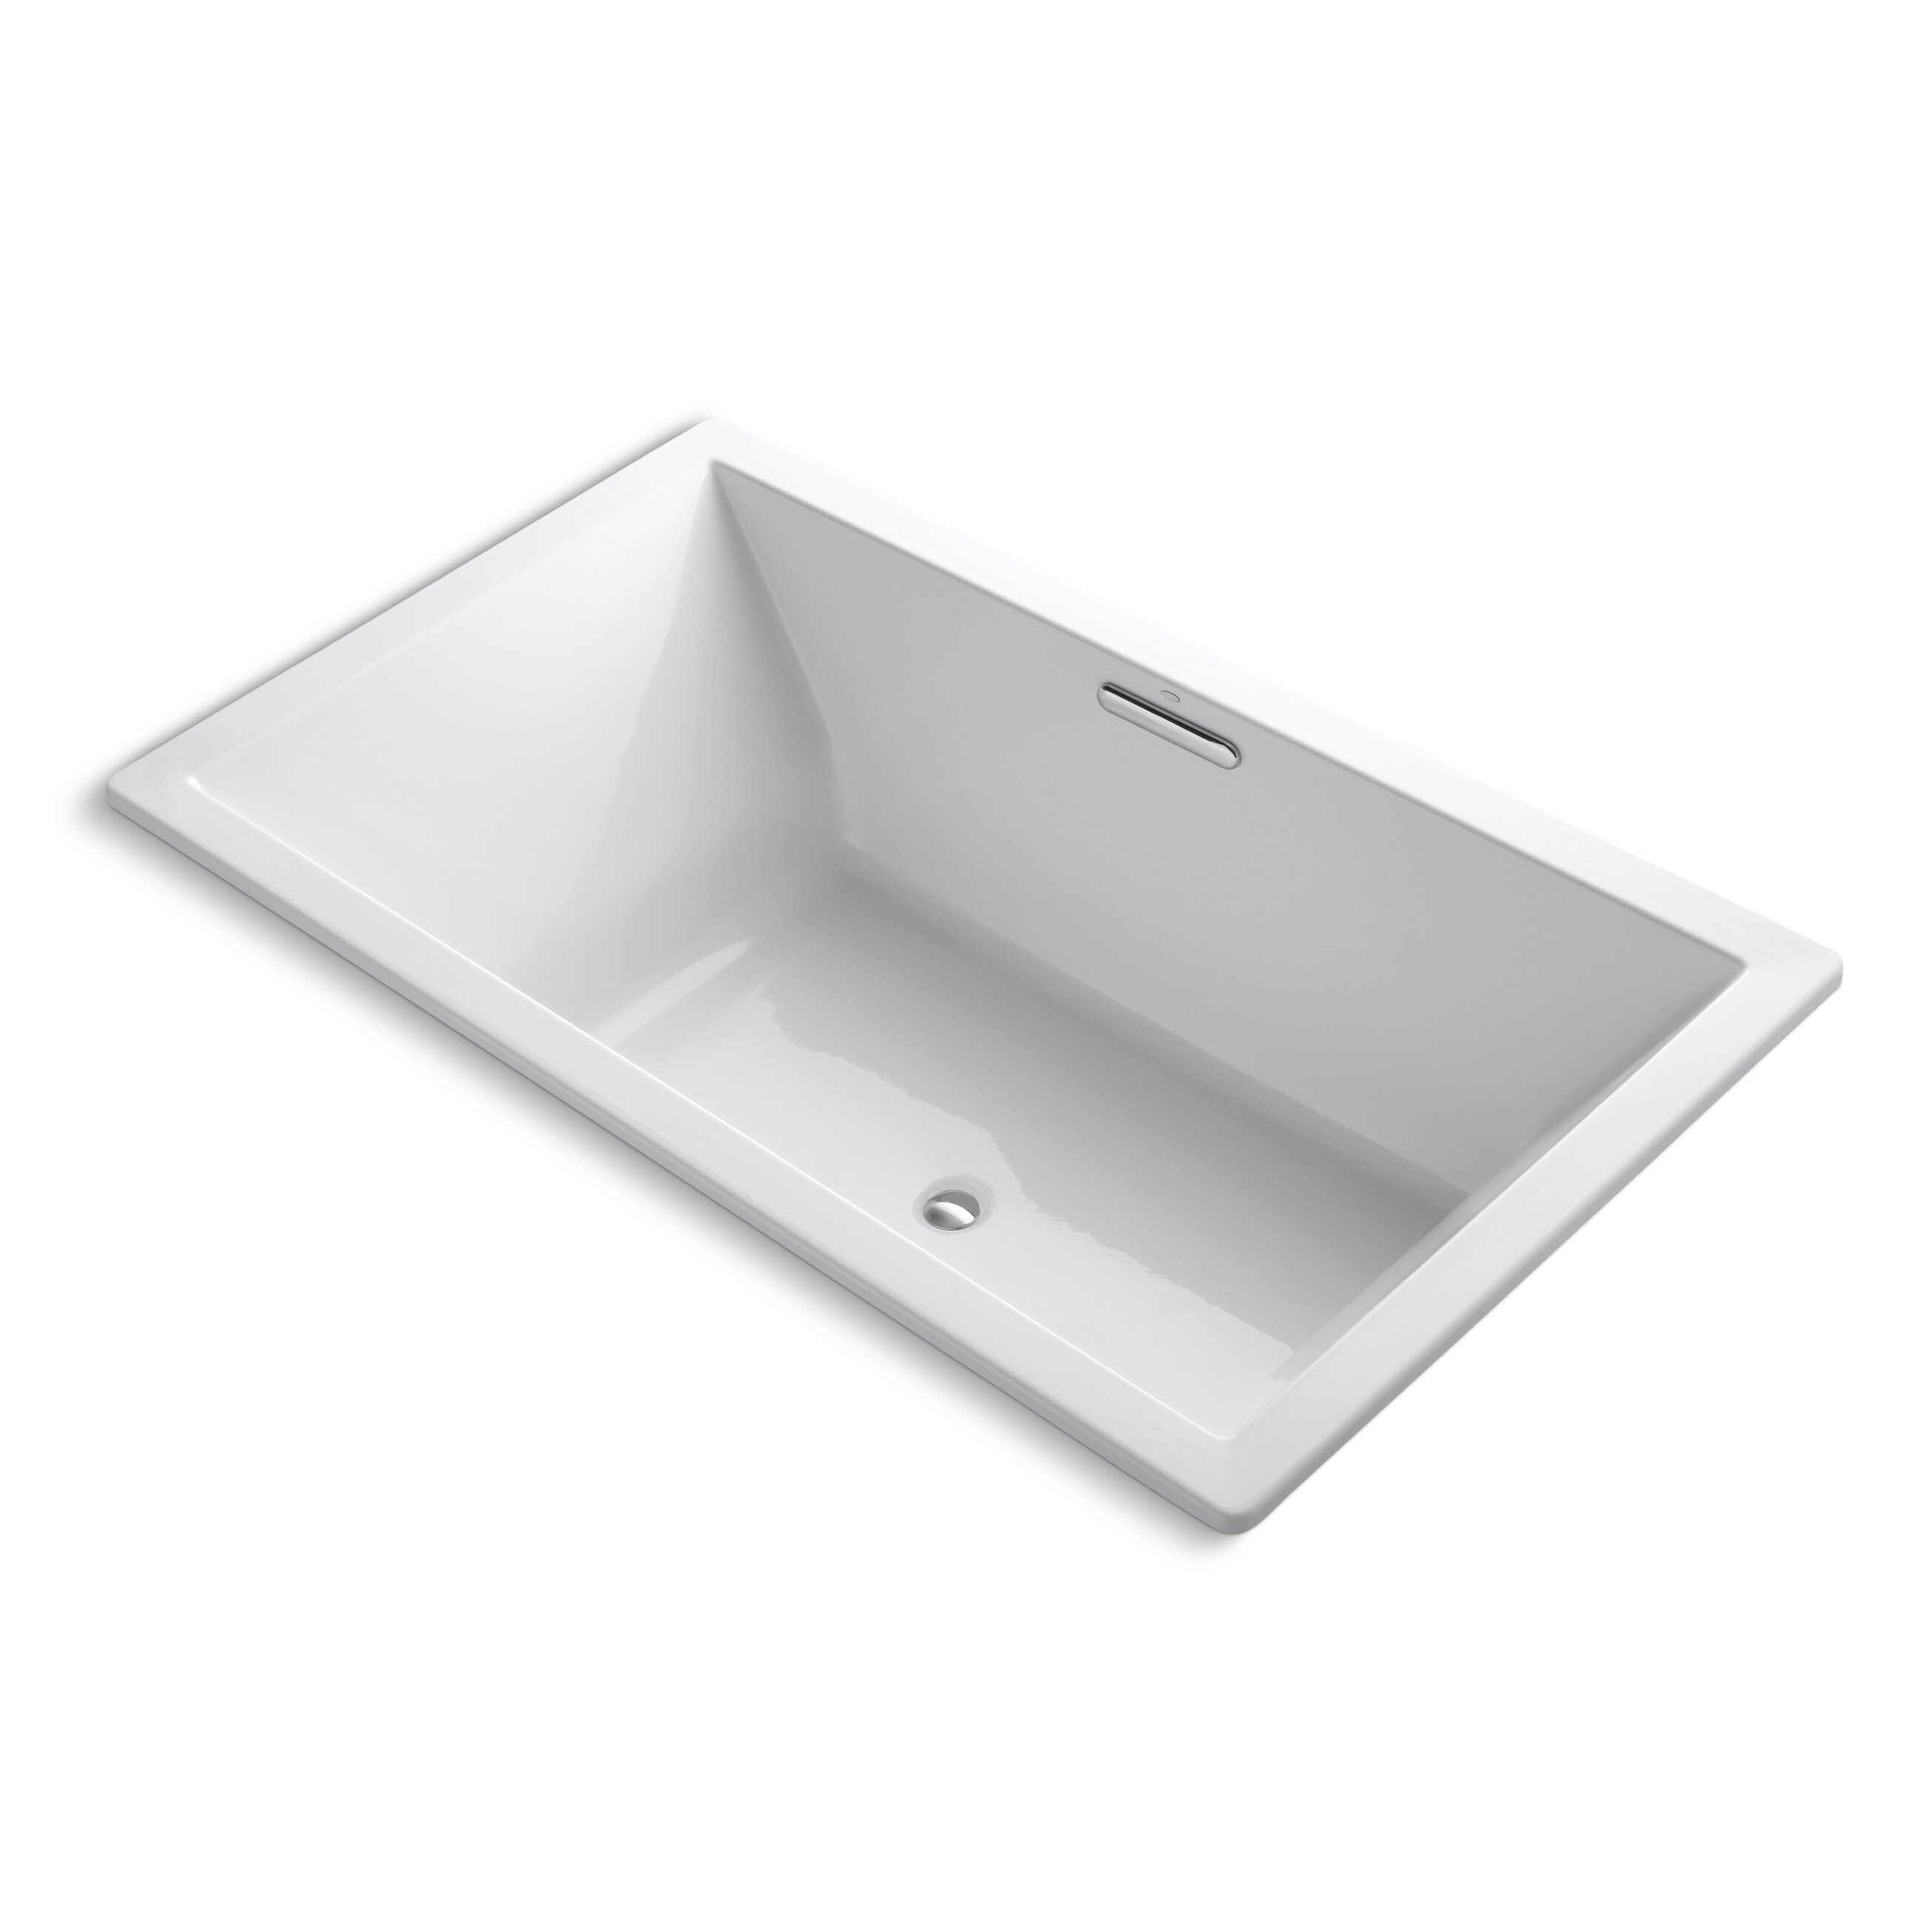 Www Kohler Toilets : Kohler Toilets Showers Sinks Faucets And More For Home Design Ideas ...